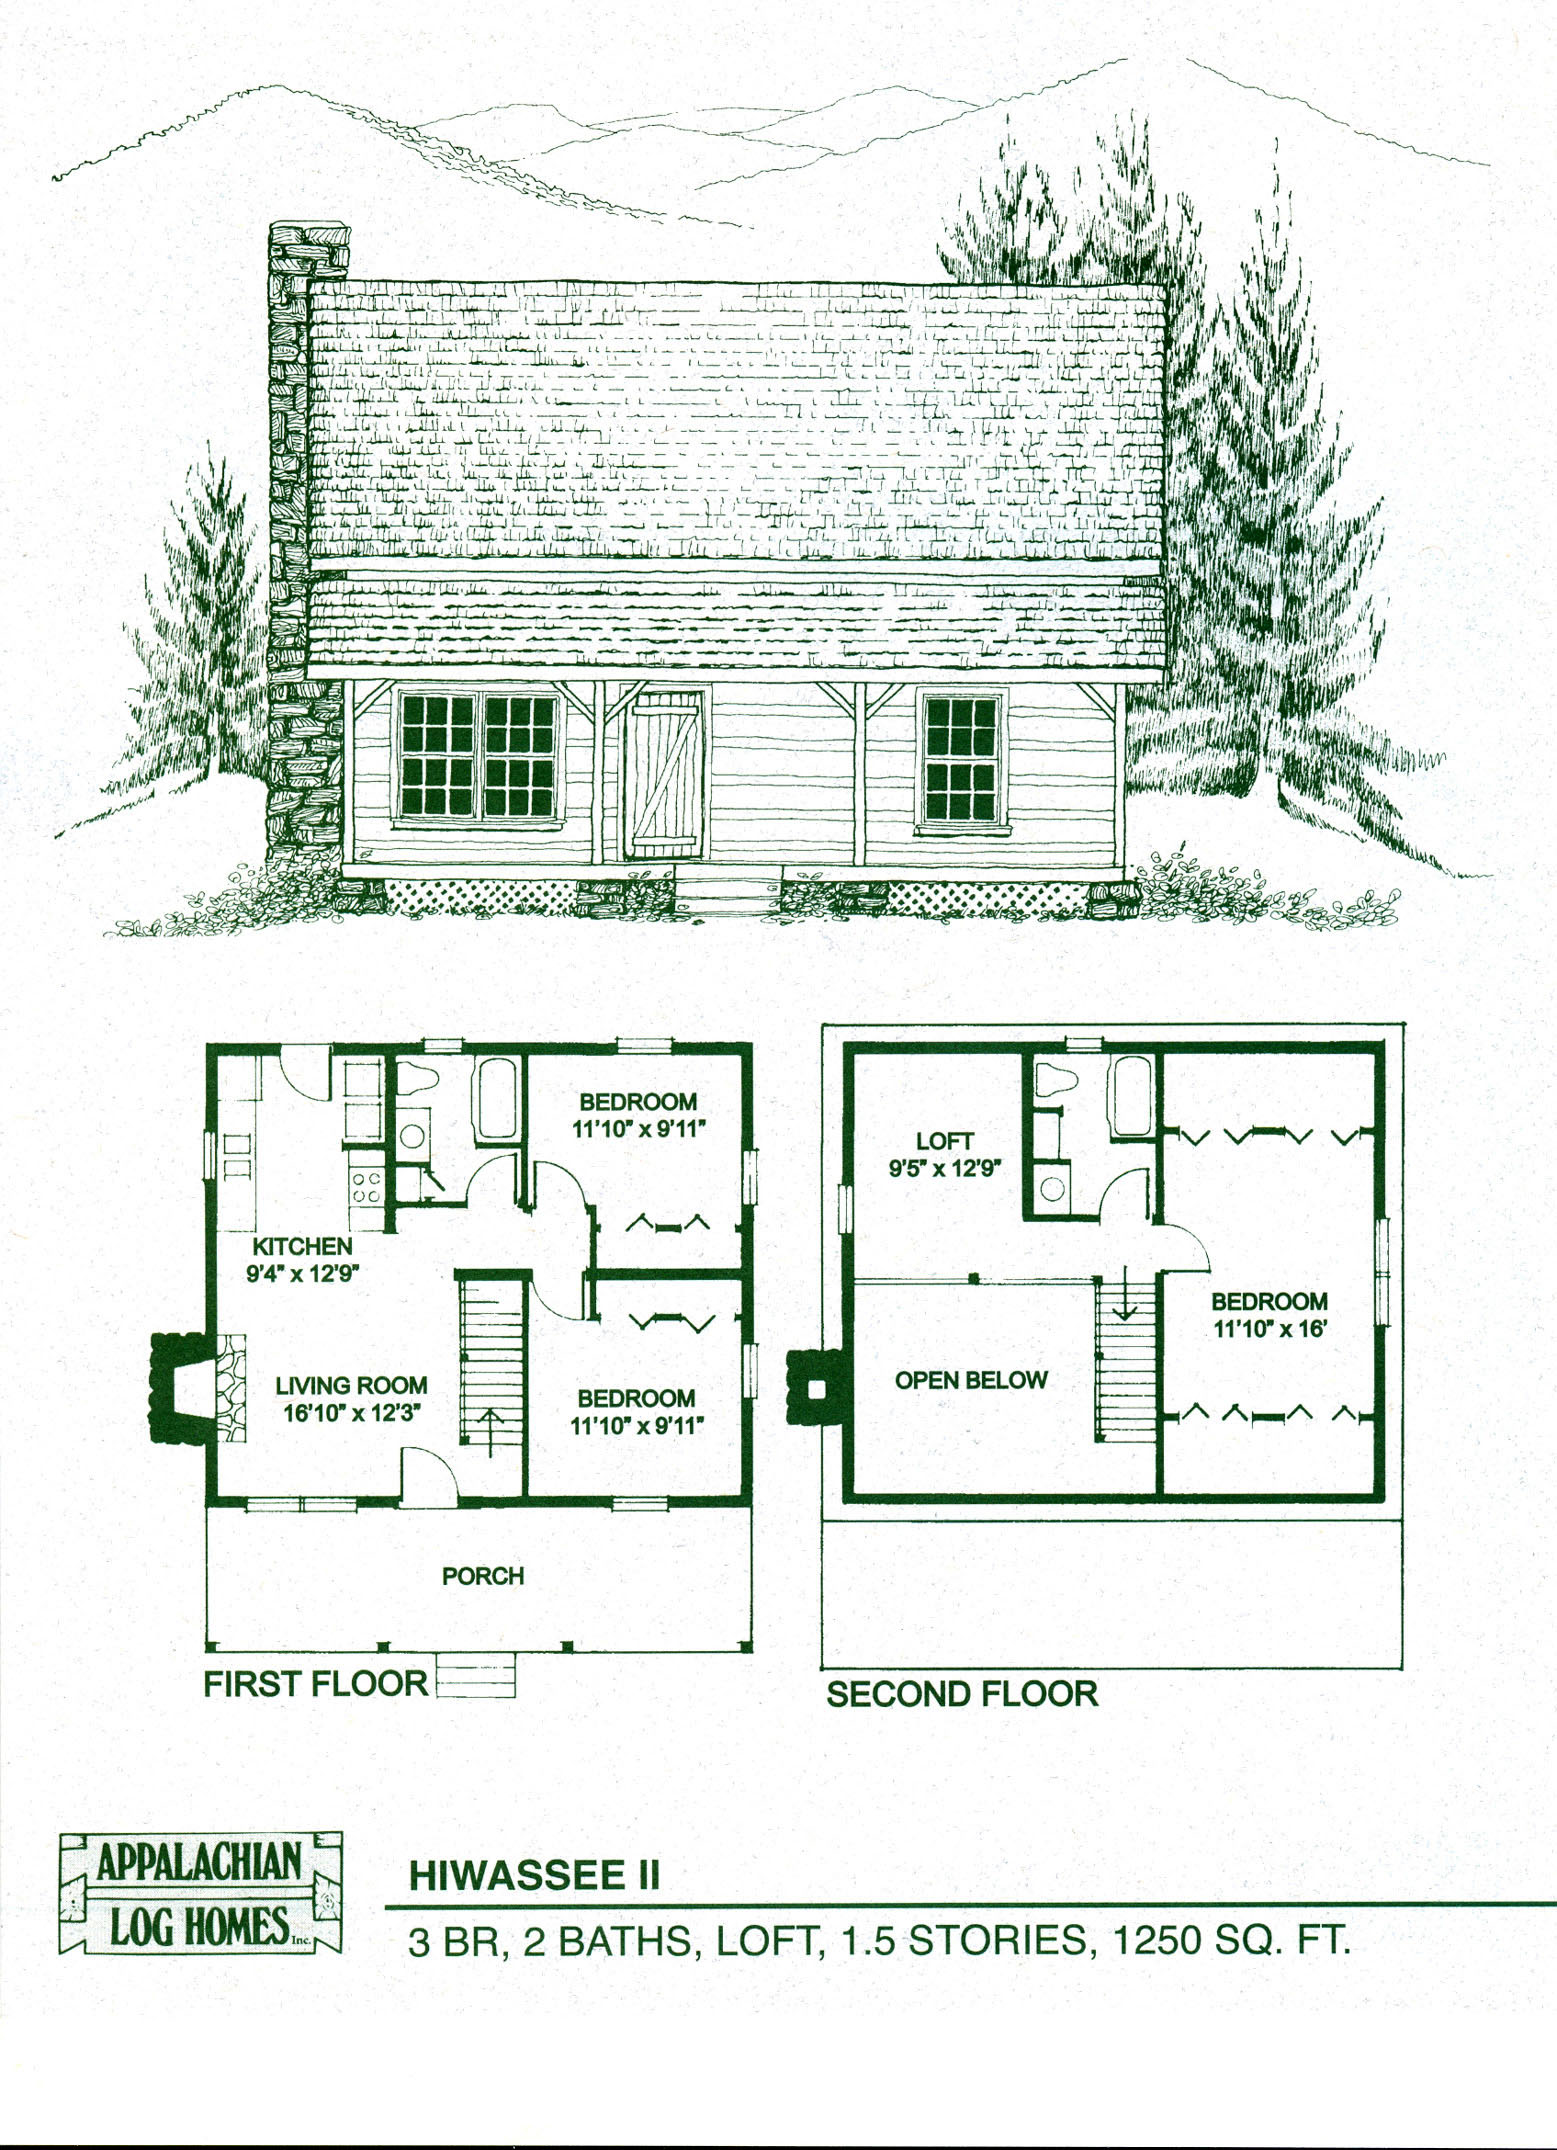 Simple Log Cabin Drawing at GetDrawings.com | Free for personal use ...